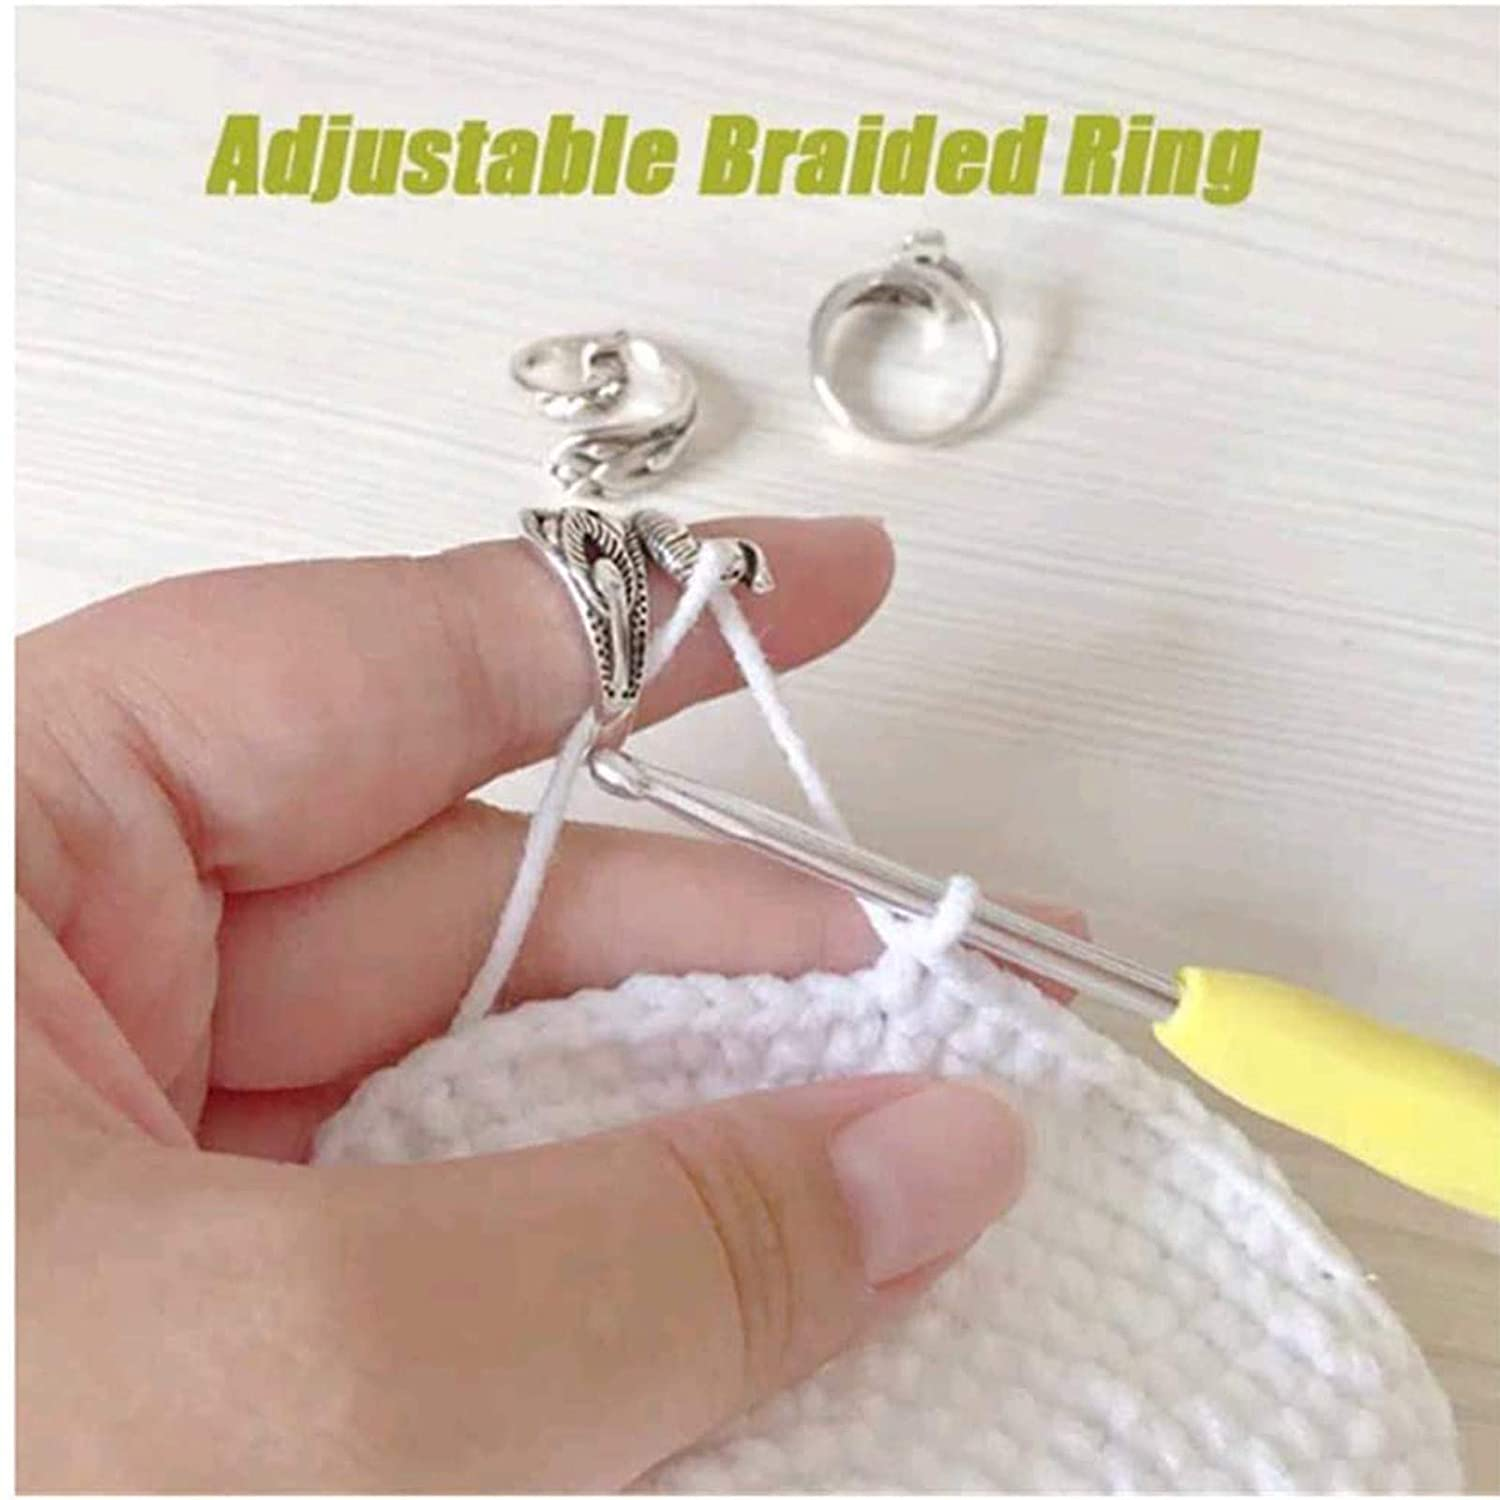 Adjustable Knitting Loop Crochet Hook Ring,Advanced Peacock Ring, Knitting Accessories,Yarn Guide Finger Holder Knitting Thimble Knitting Loop Ring Crochet Ring (White, Silver Plated copper-6PCS)